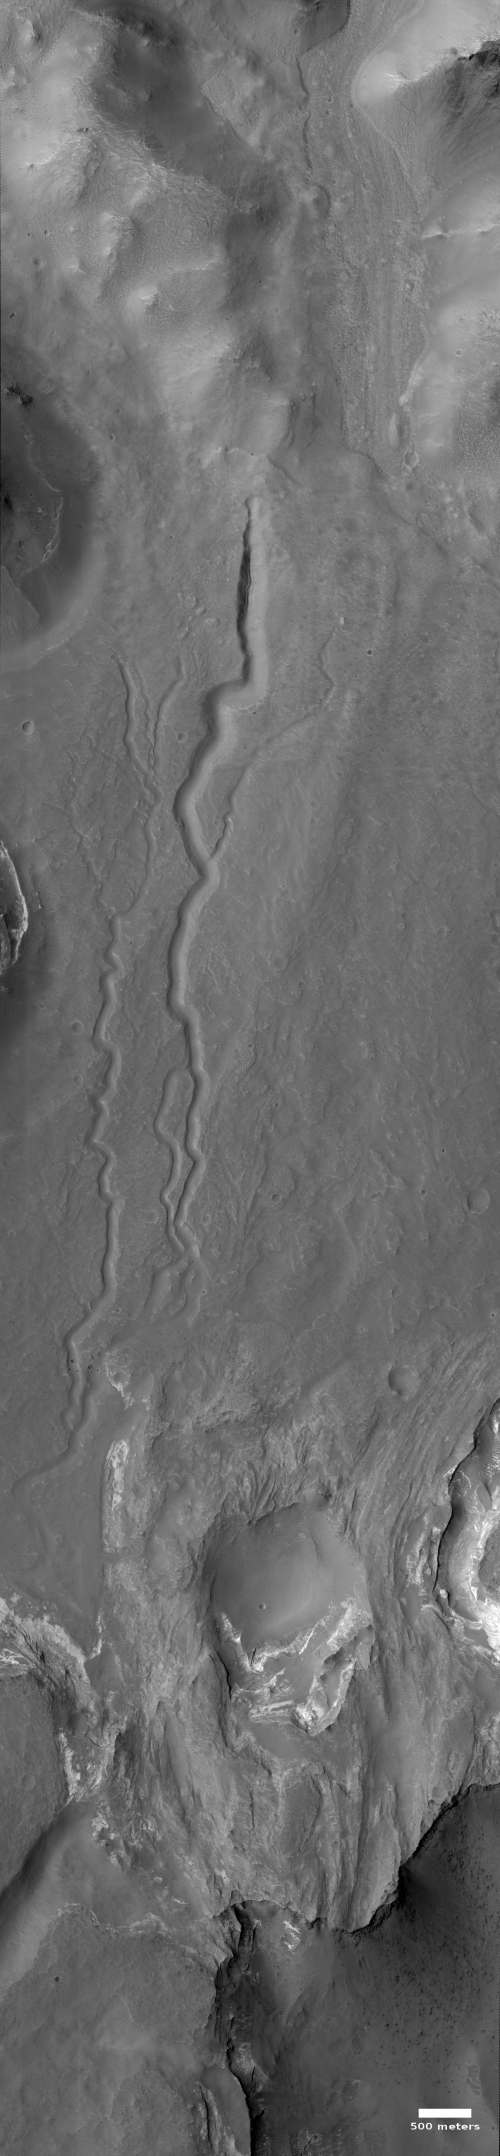 Channels in Terby Crater on Mars